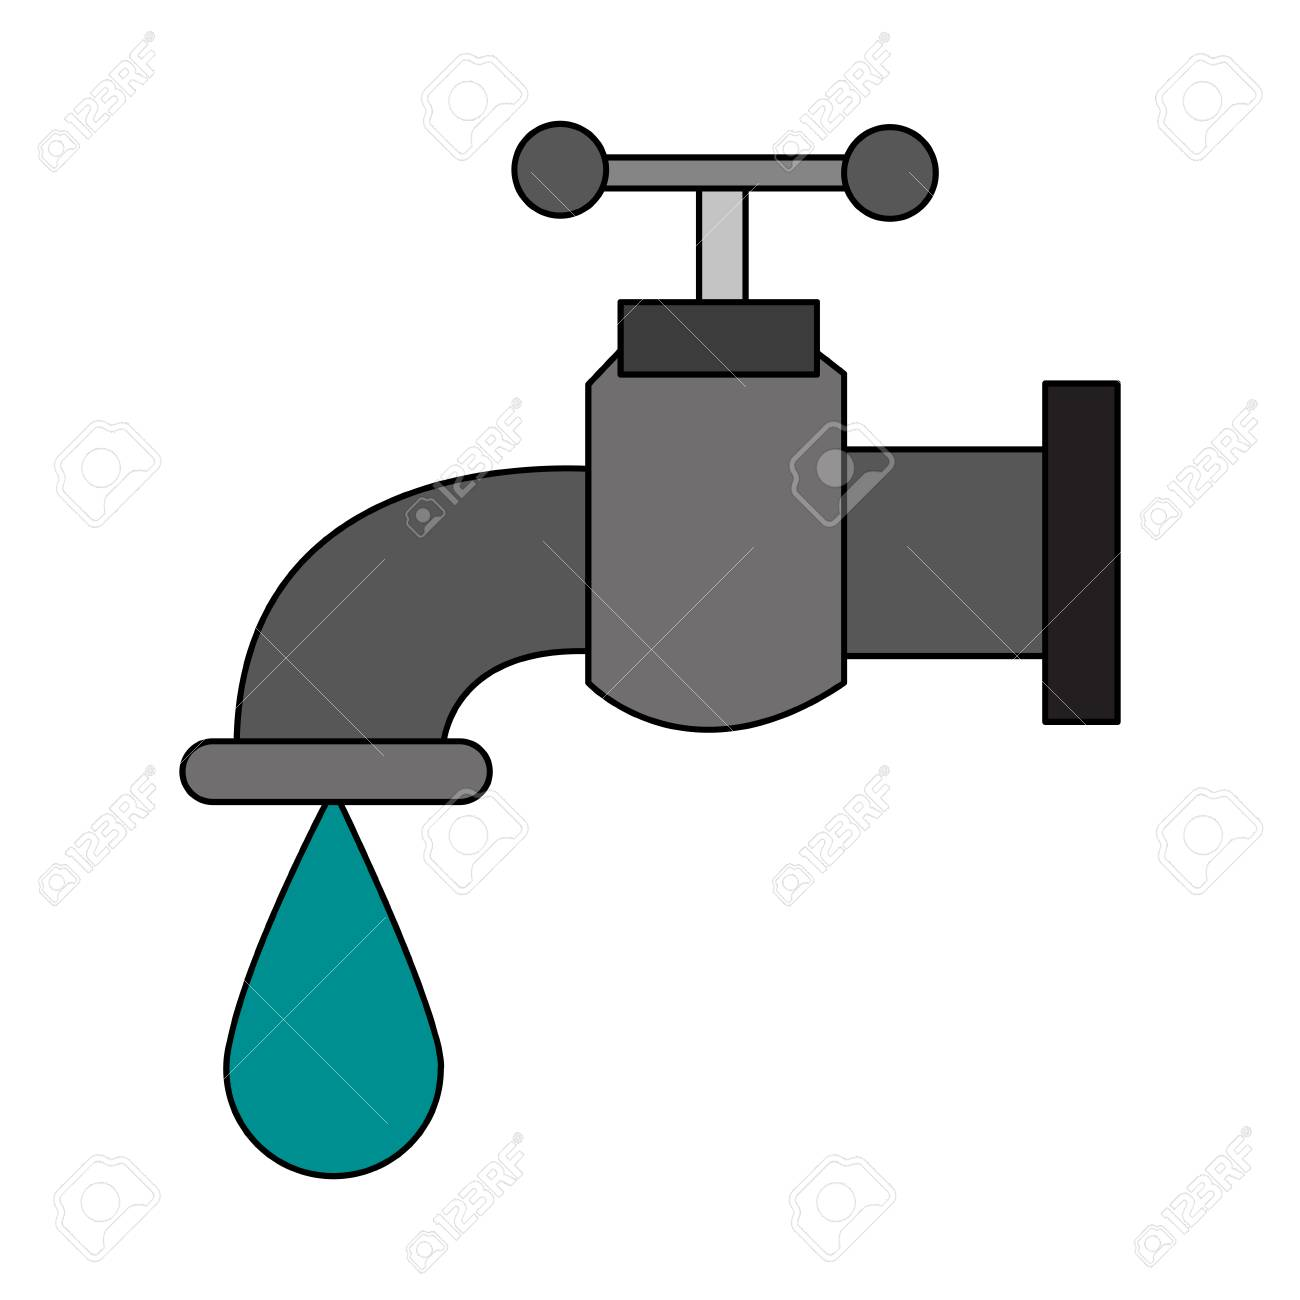 Water Faucet Symbol Vector Illustration Graphic Design Royalty Free ...